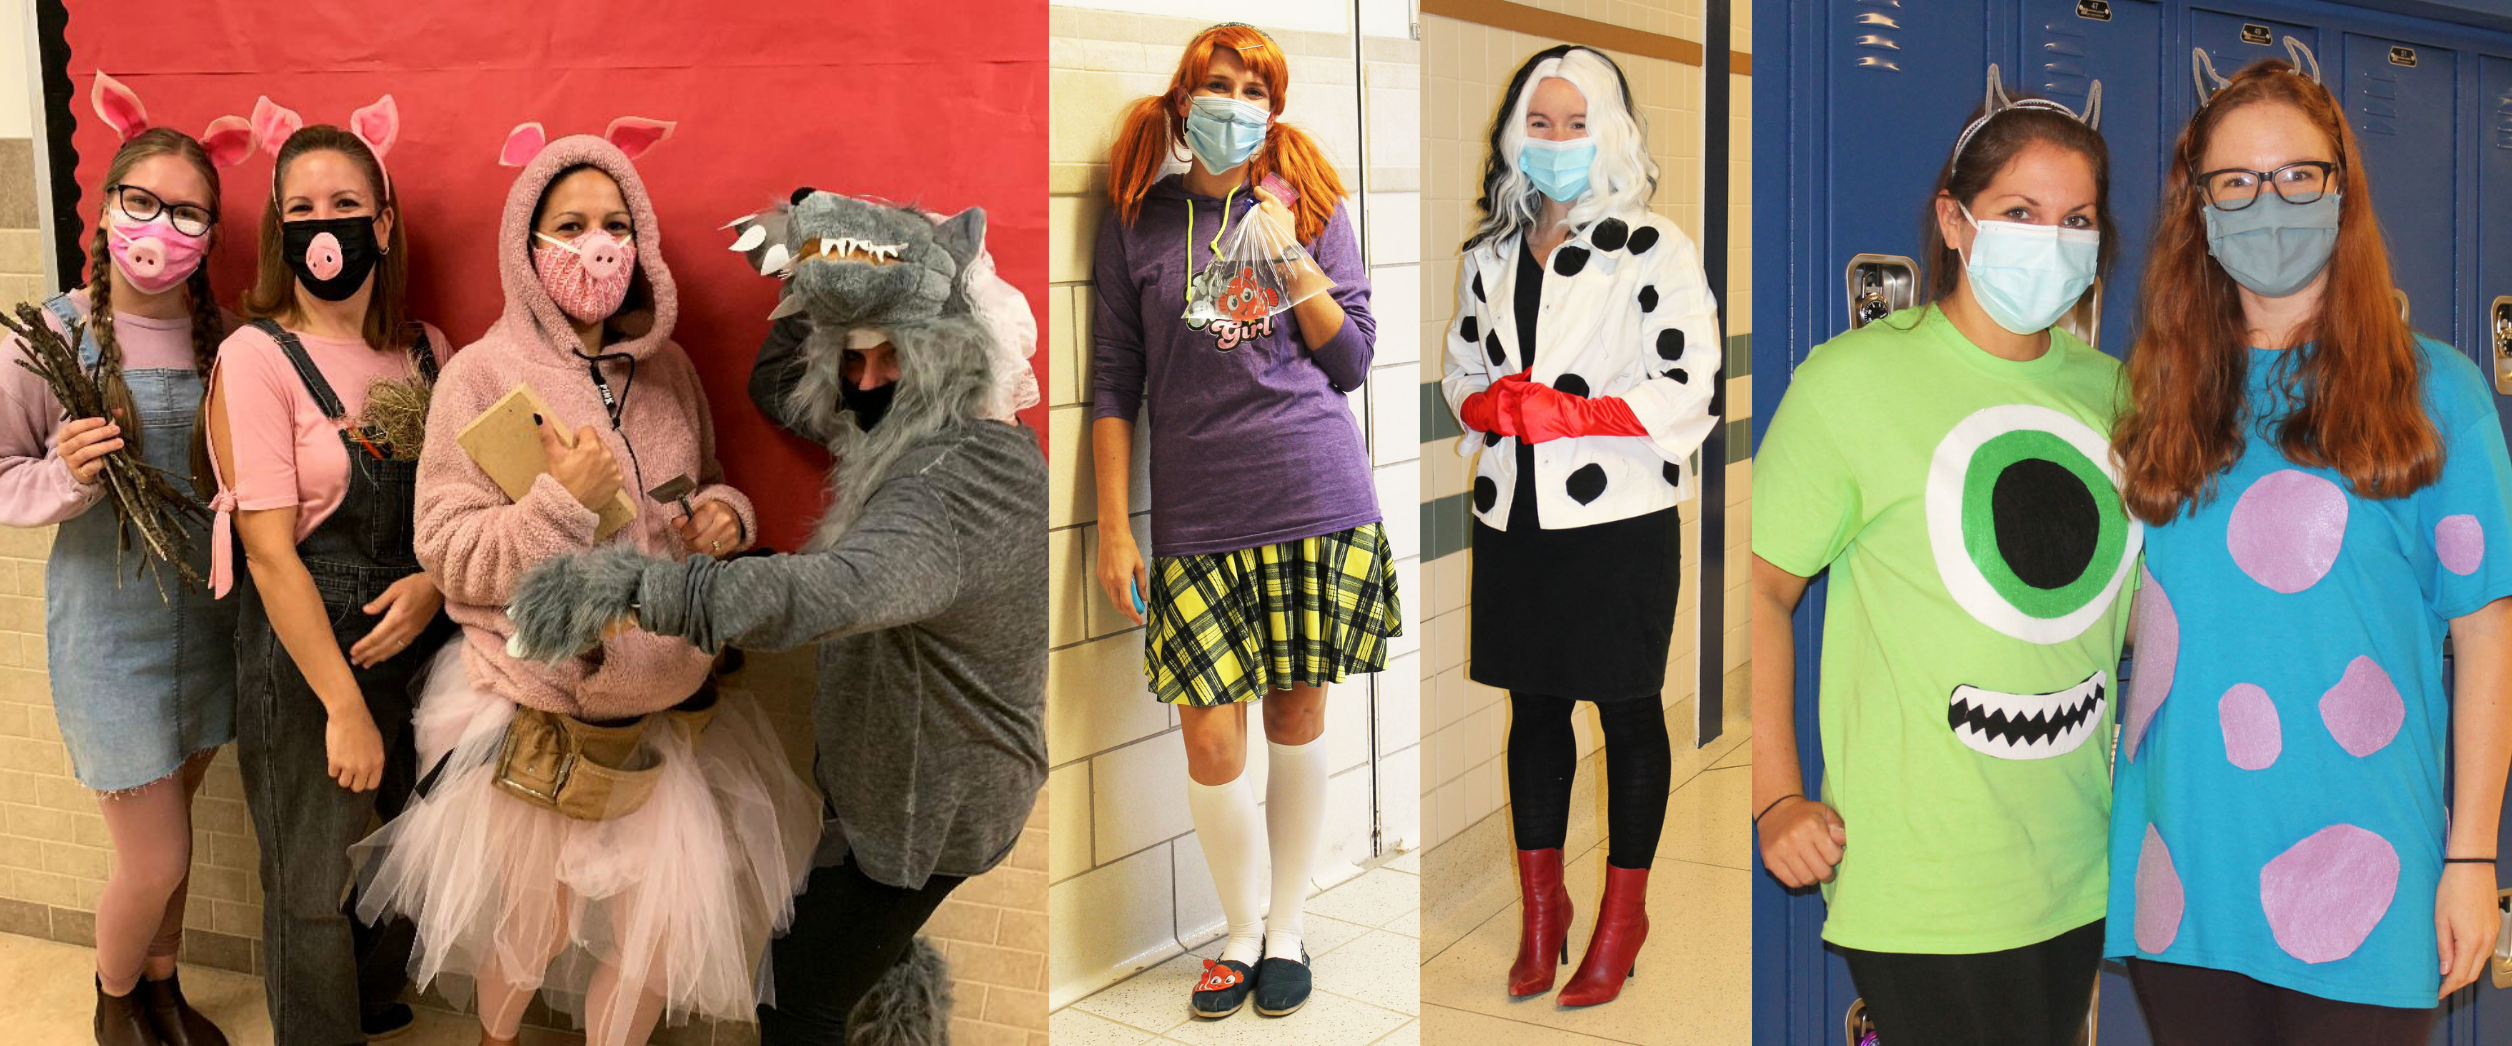 a montage of photos shows teachers dressed up as their favorite characters.